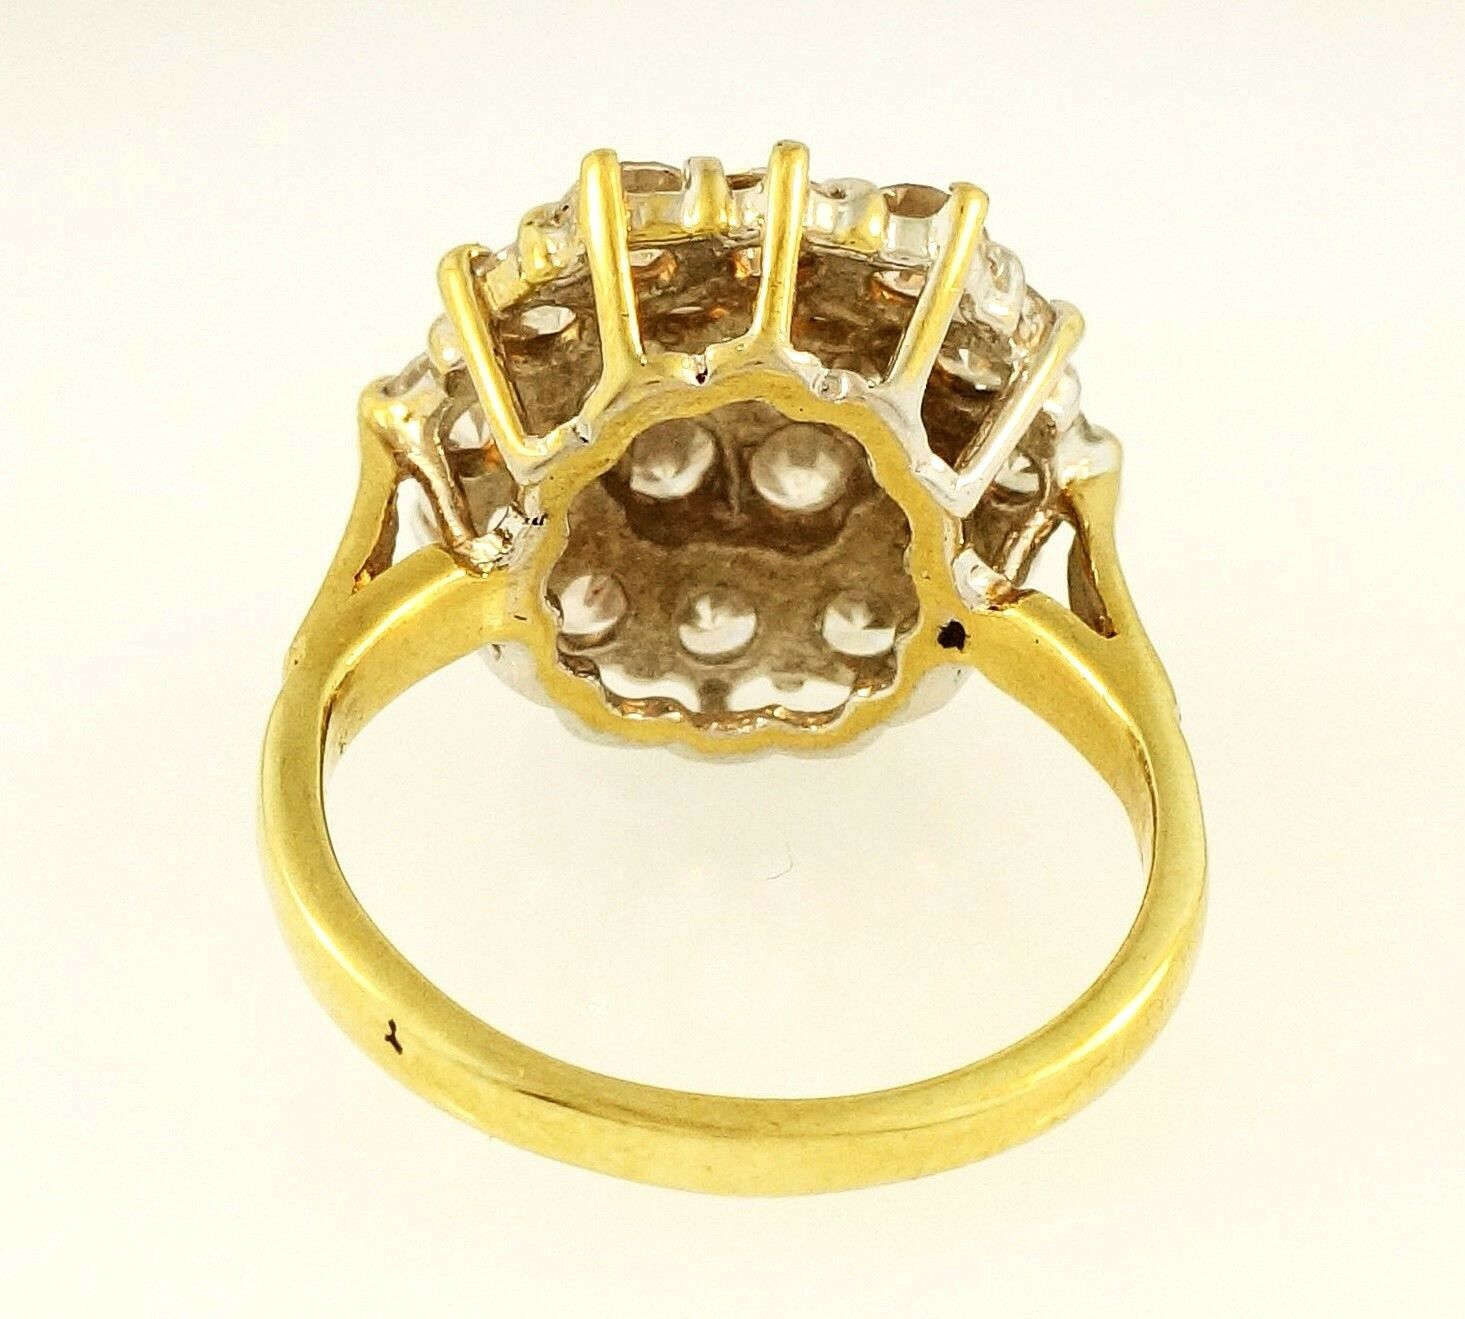 9ct Yellow Gold Simulated Diamond Cluster Ring Size L